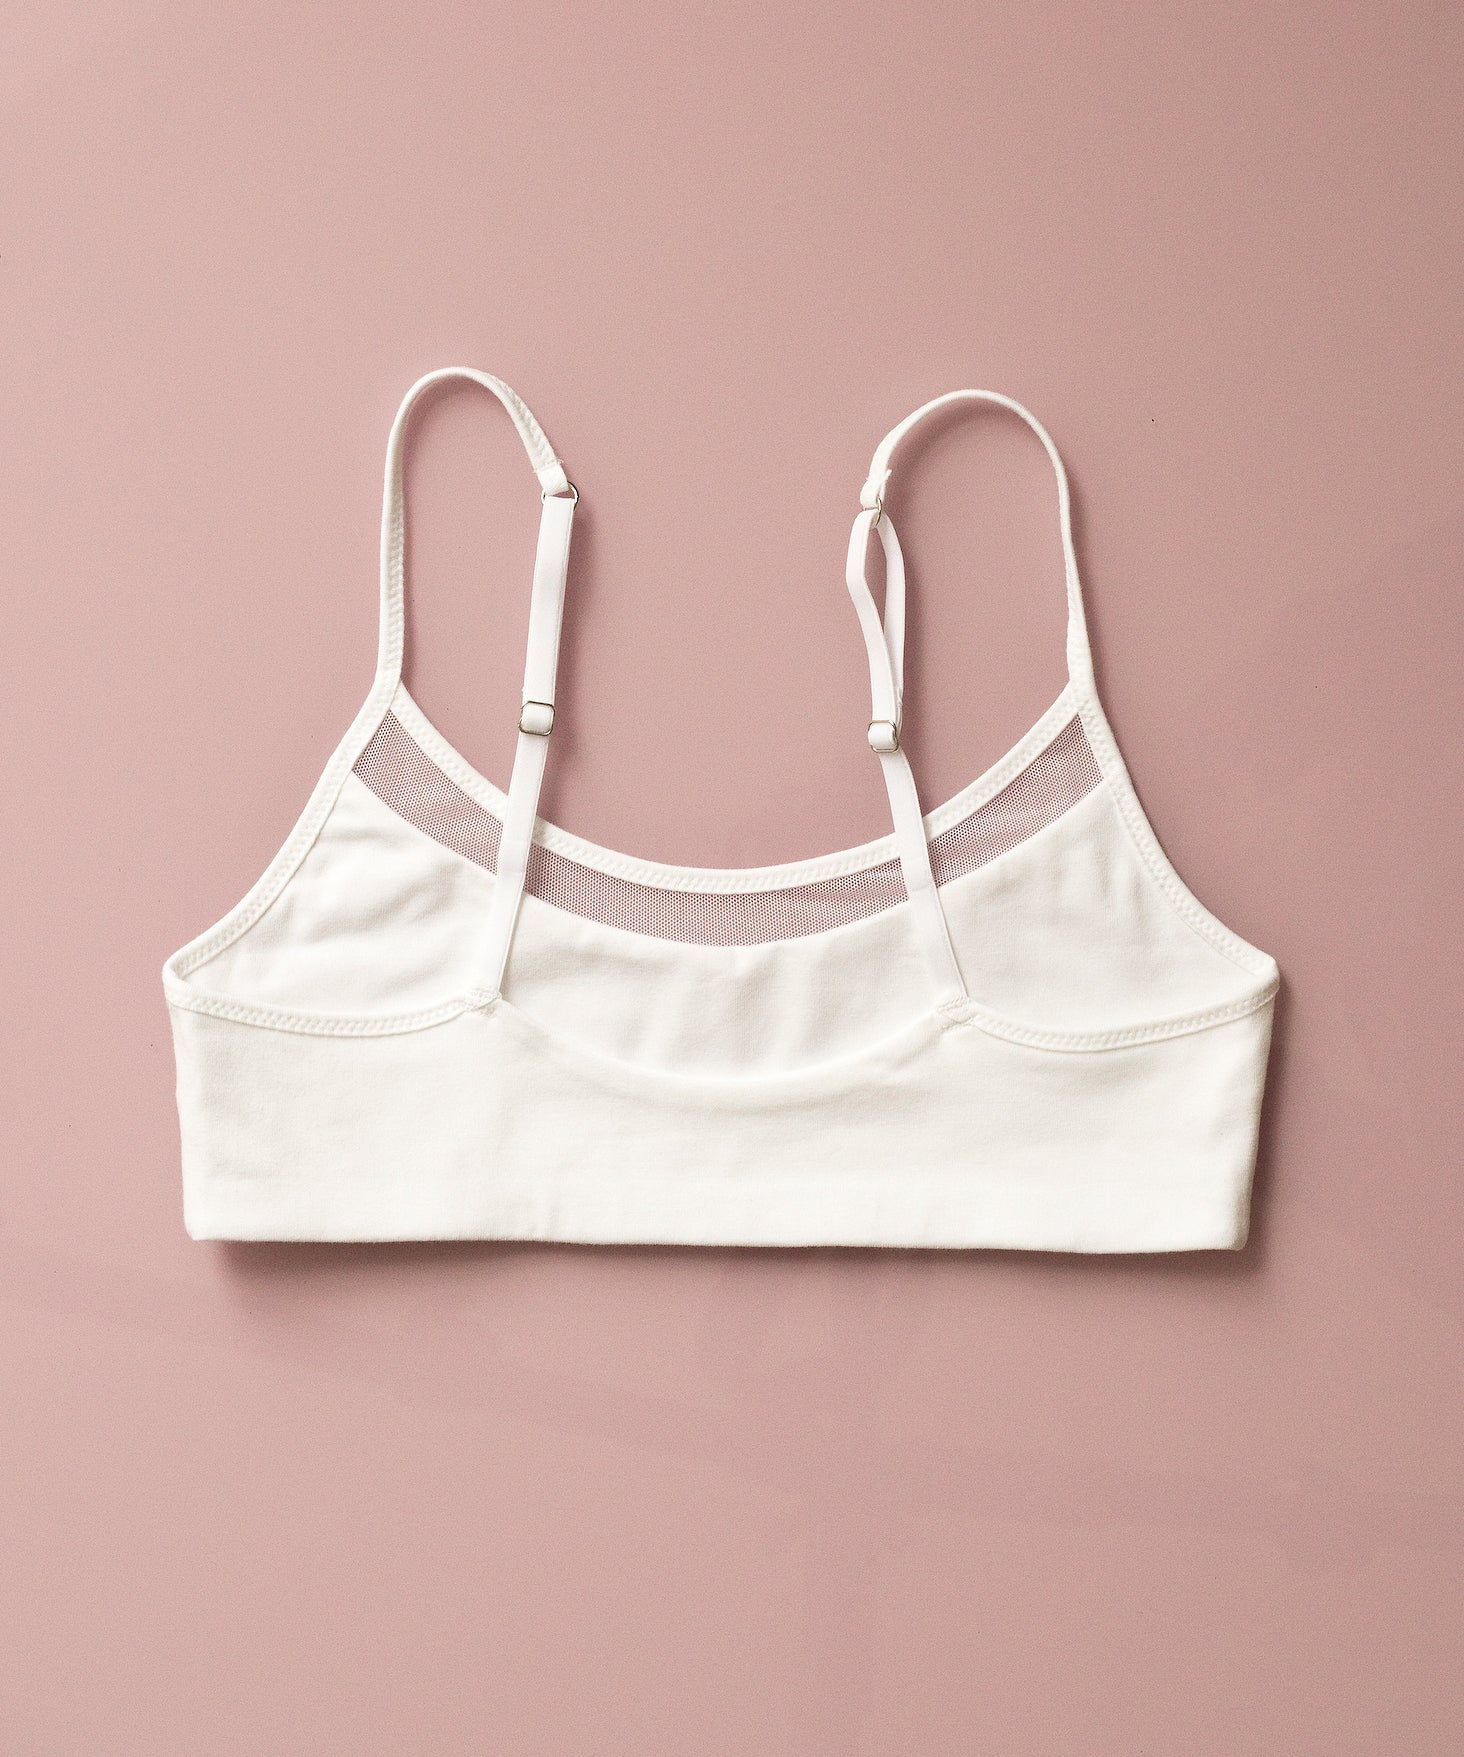 Boujo-hake-underwear-crop-top-organic-cotton-jersey-mesh-white